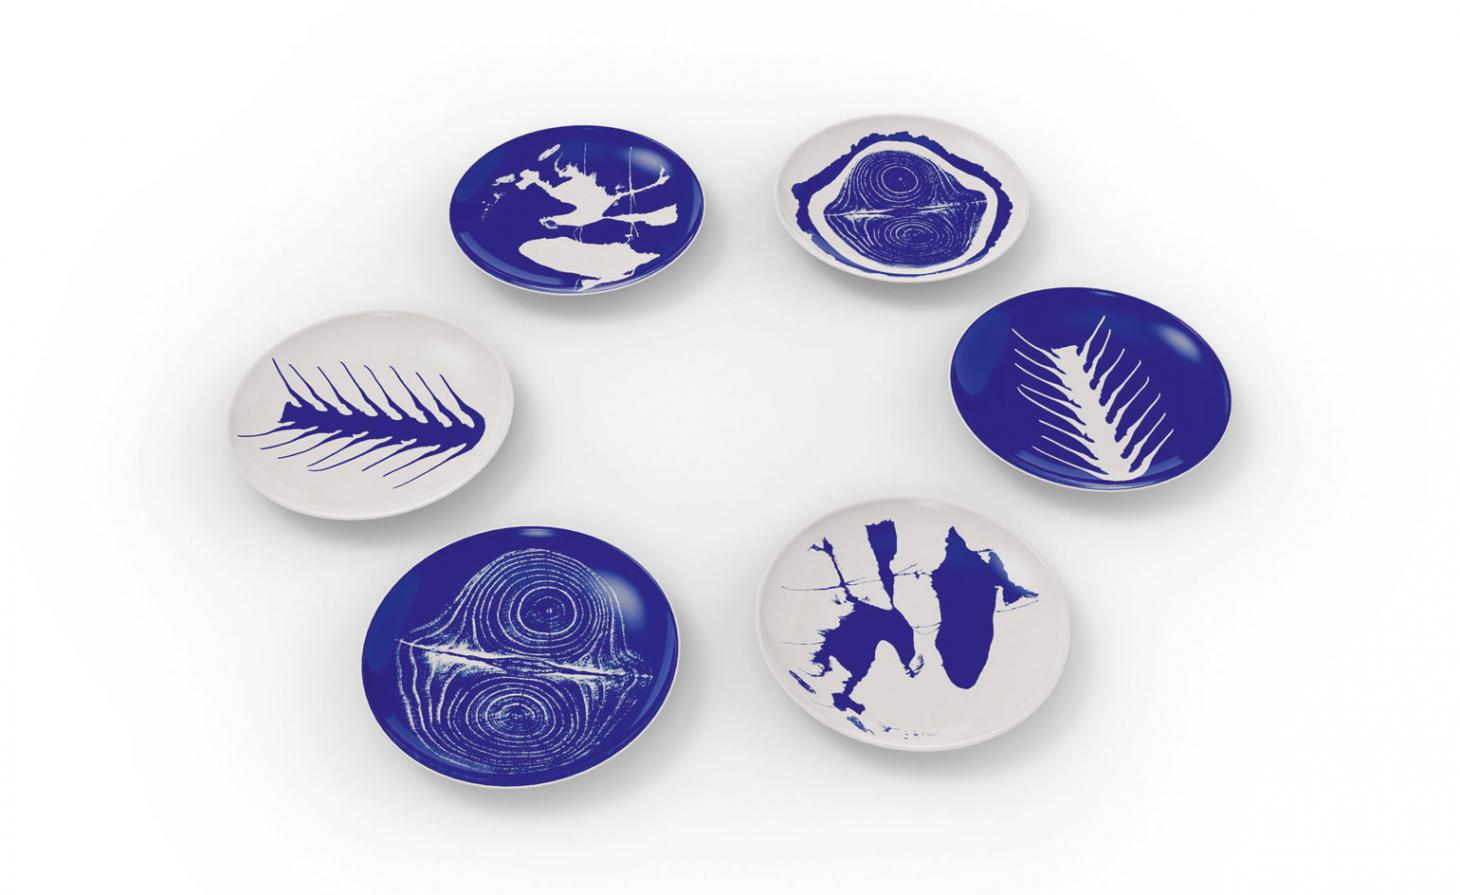 Blue and white plates in a circle